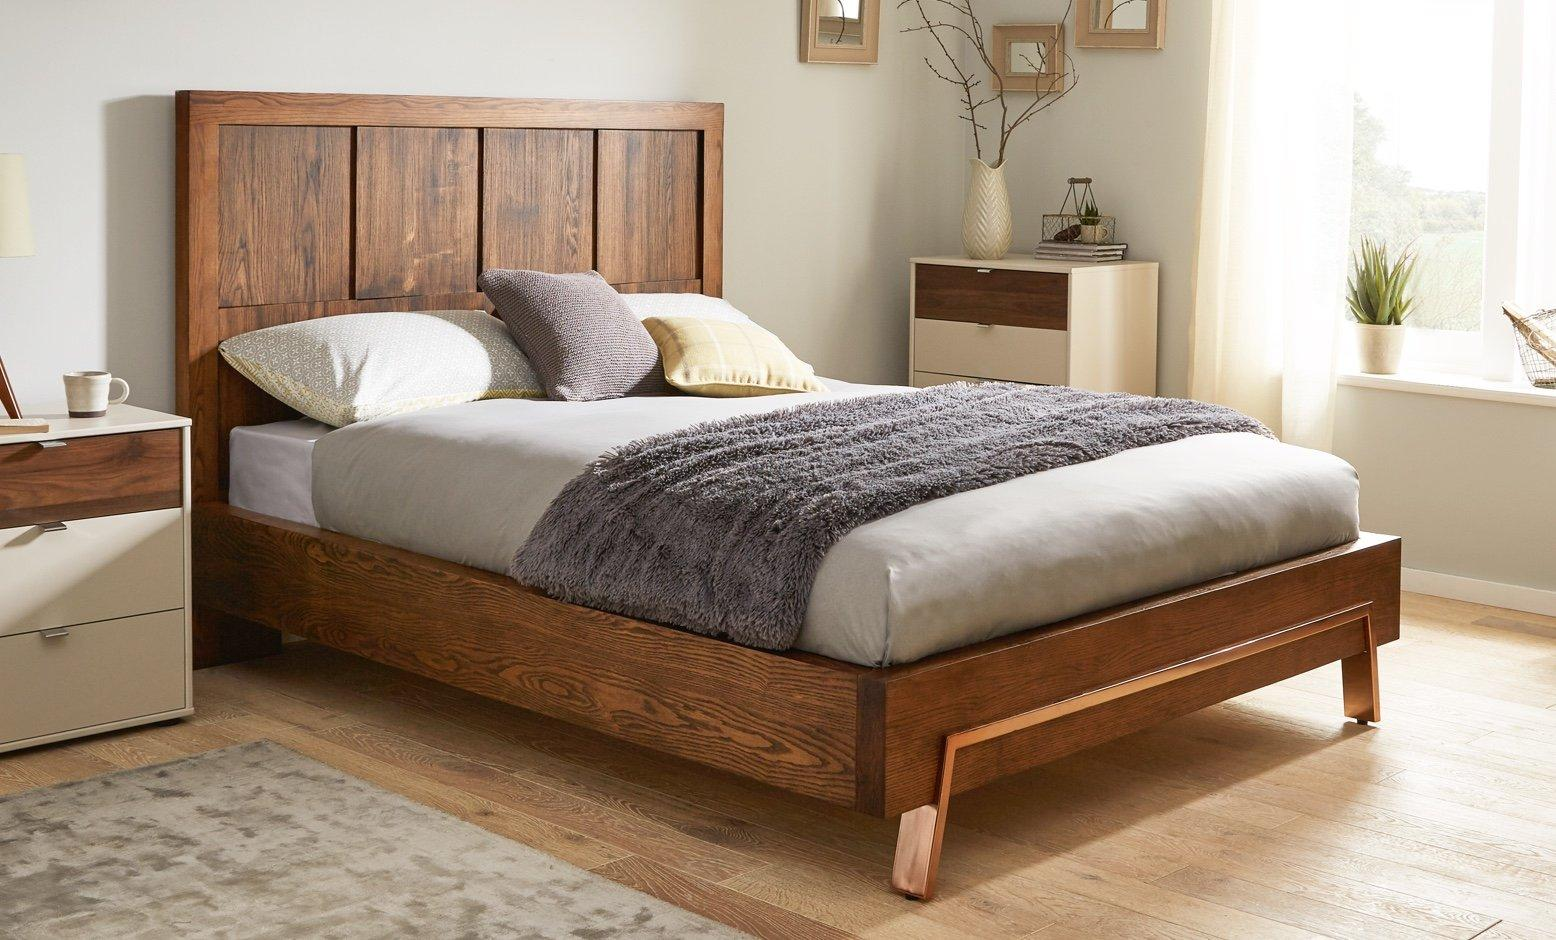 Does-Bed-Height-Really-Matter